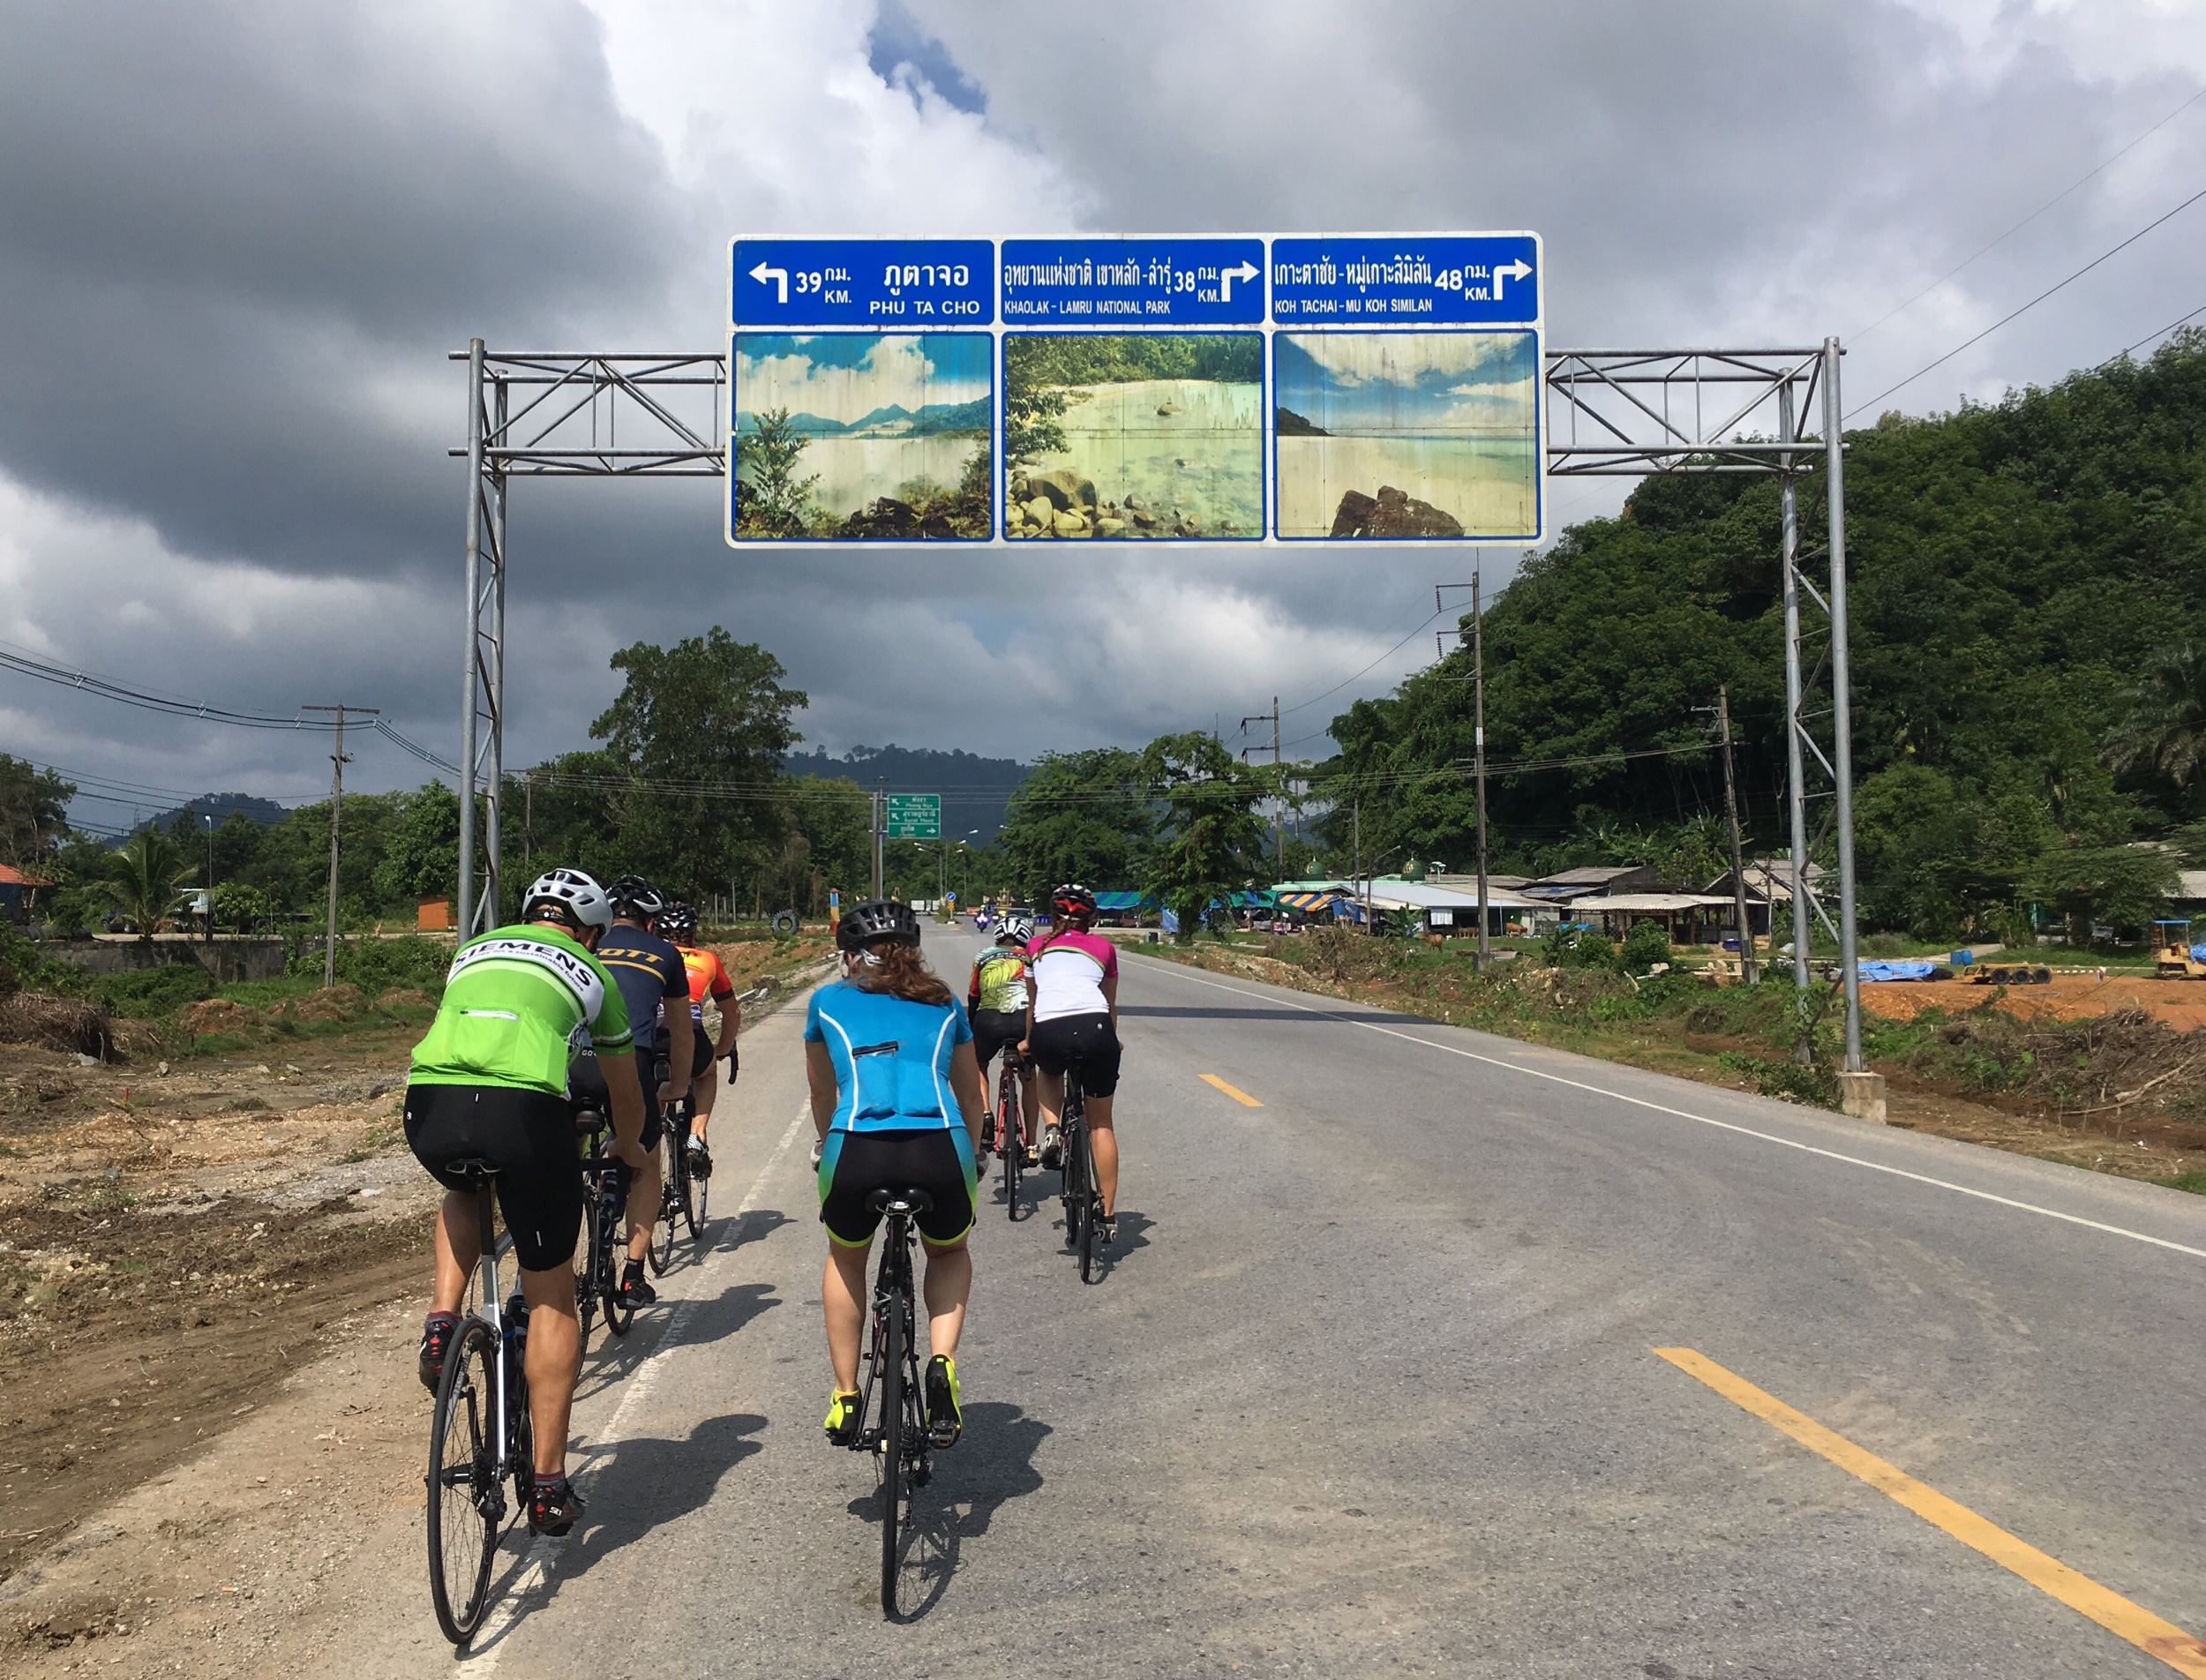 Steep adventures, Thailand, cycling, cycling adventure, ijm, international justice mission, adventure fundraising, travel for a cause, adventure travel, group travel, Phuket, Bangkok, Asia, biking in Thailand